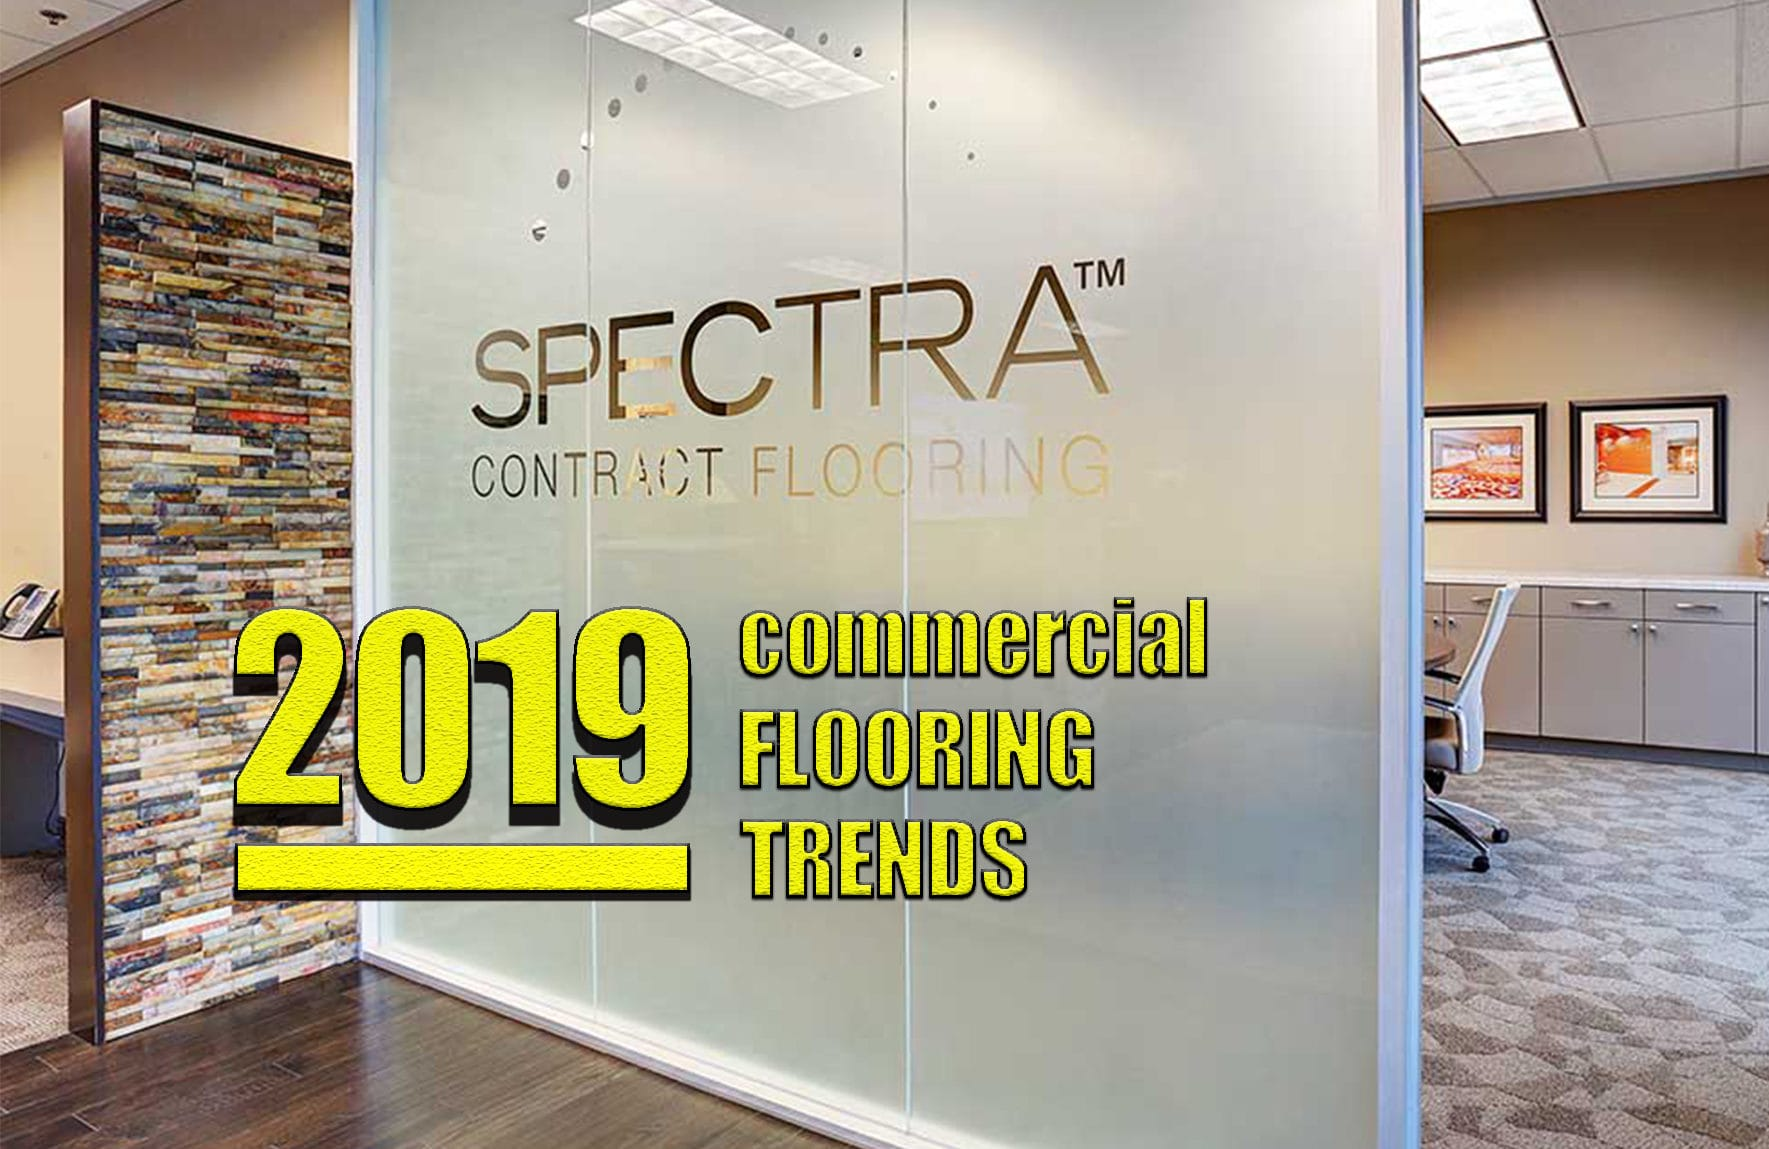 Commercial Flooring Trends